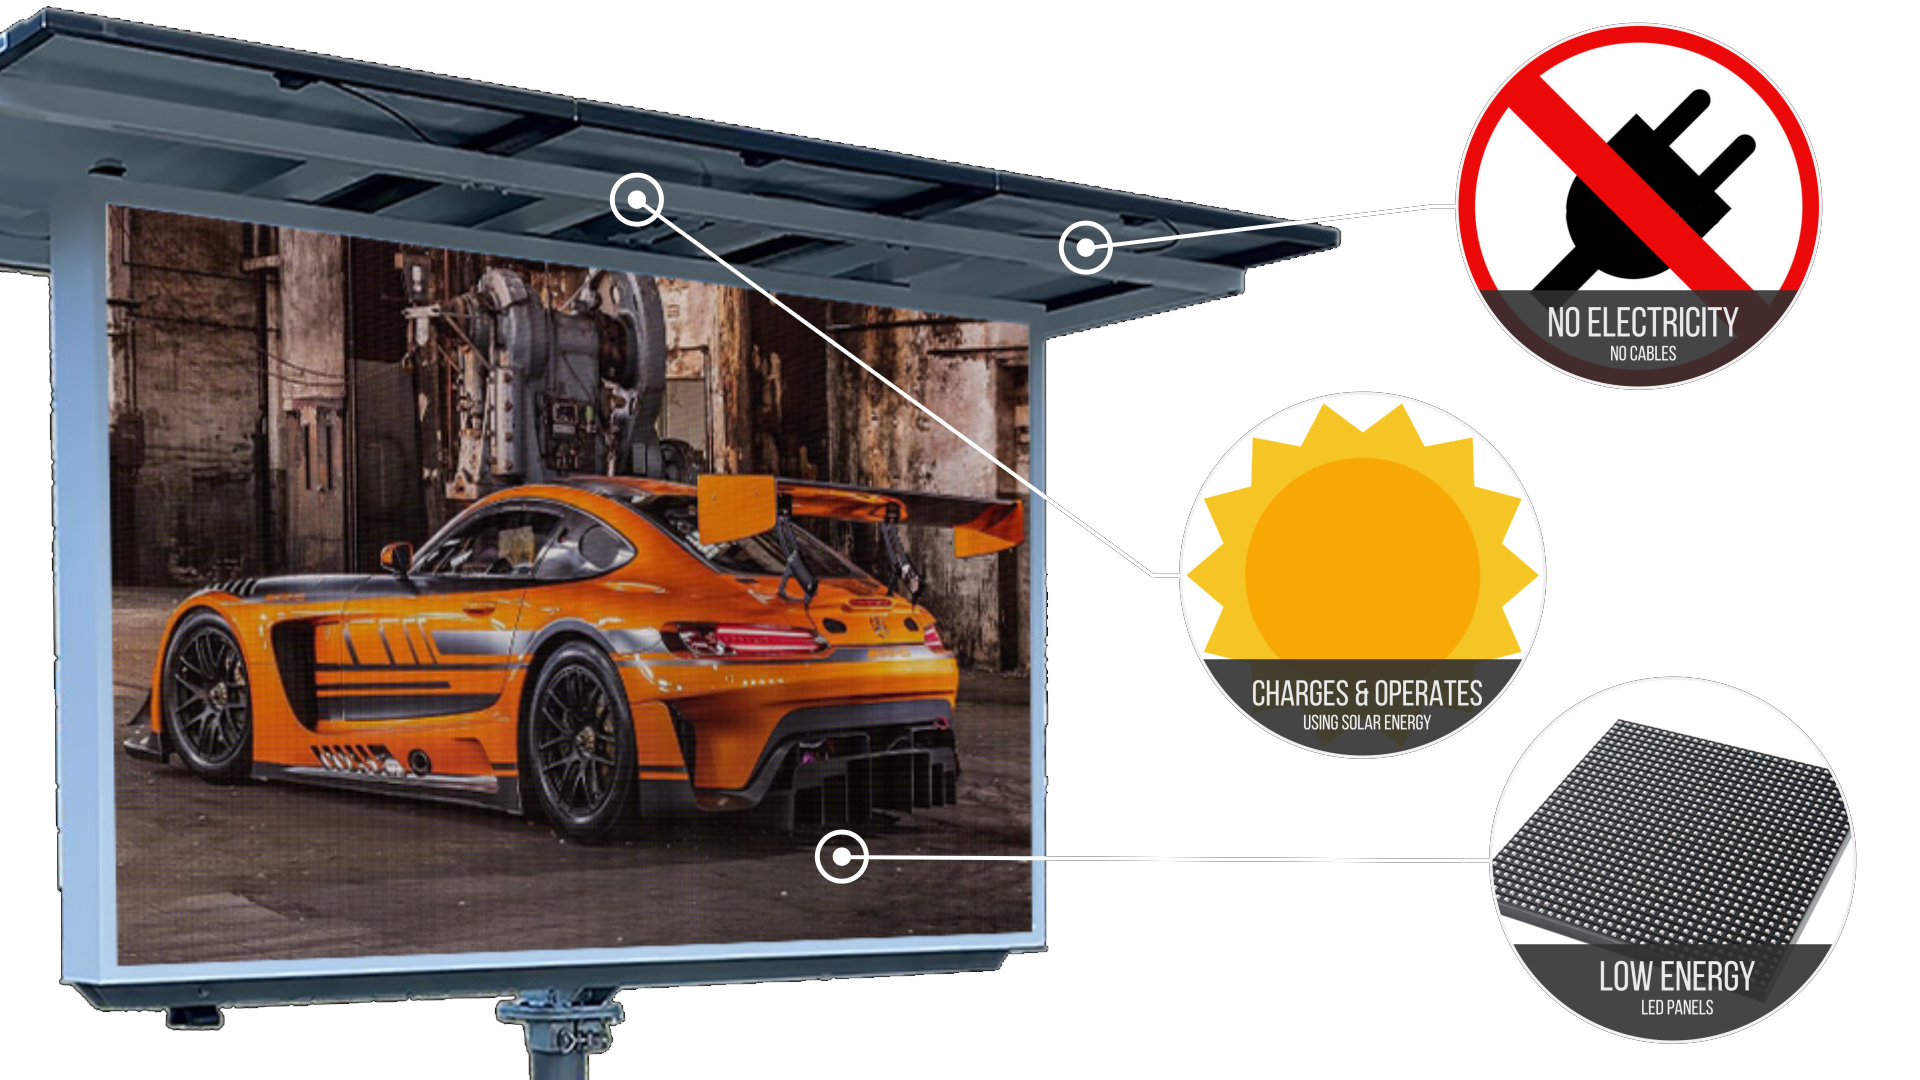 The Voxson V4s Mobile LED sign can be parked anywhere, with no cables running across the driveways, and no power grid or electricity required